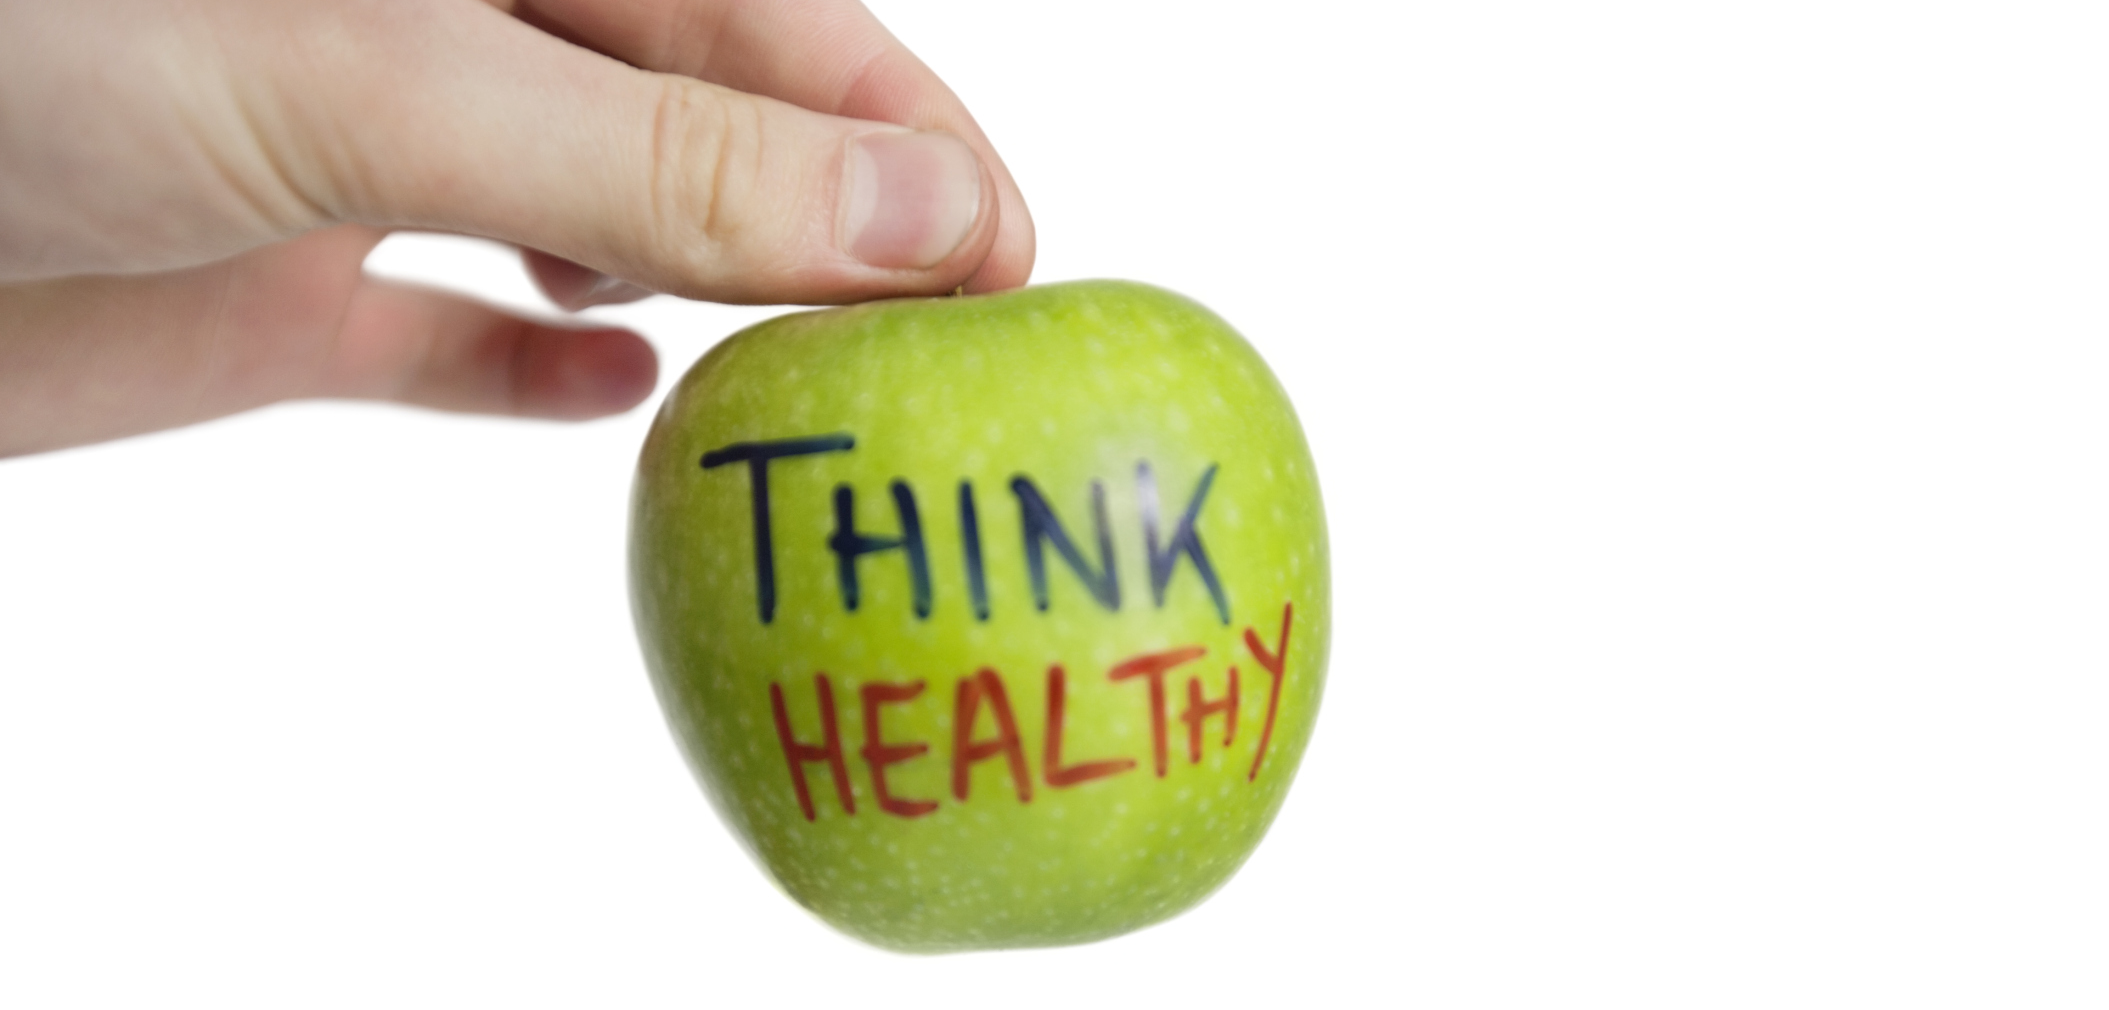 #GoingGreen is thining clean -GvG is healthy and helps clean your mind